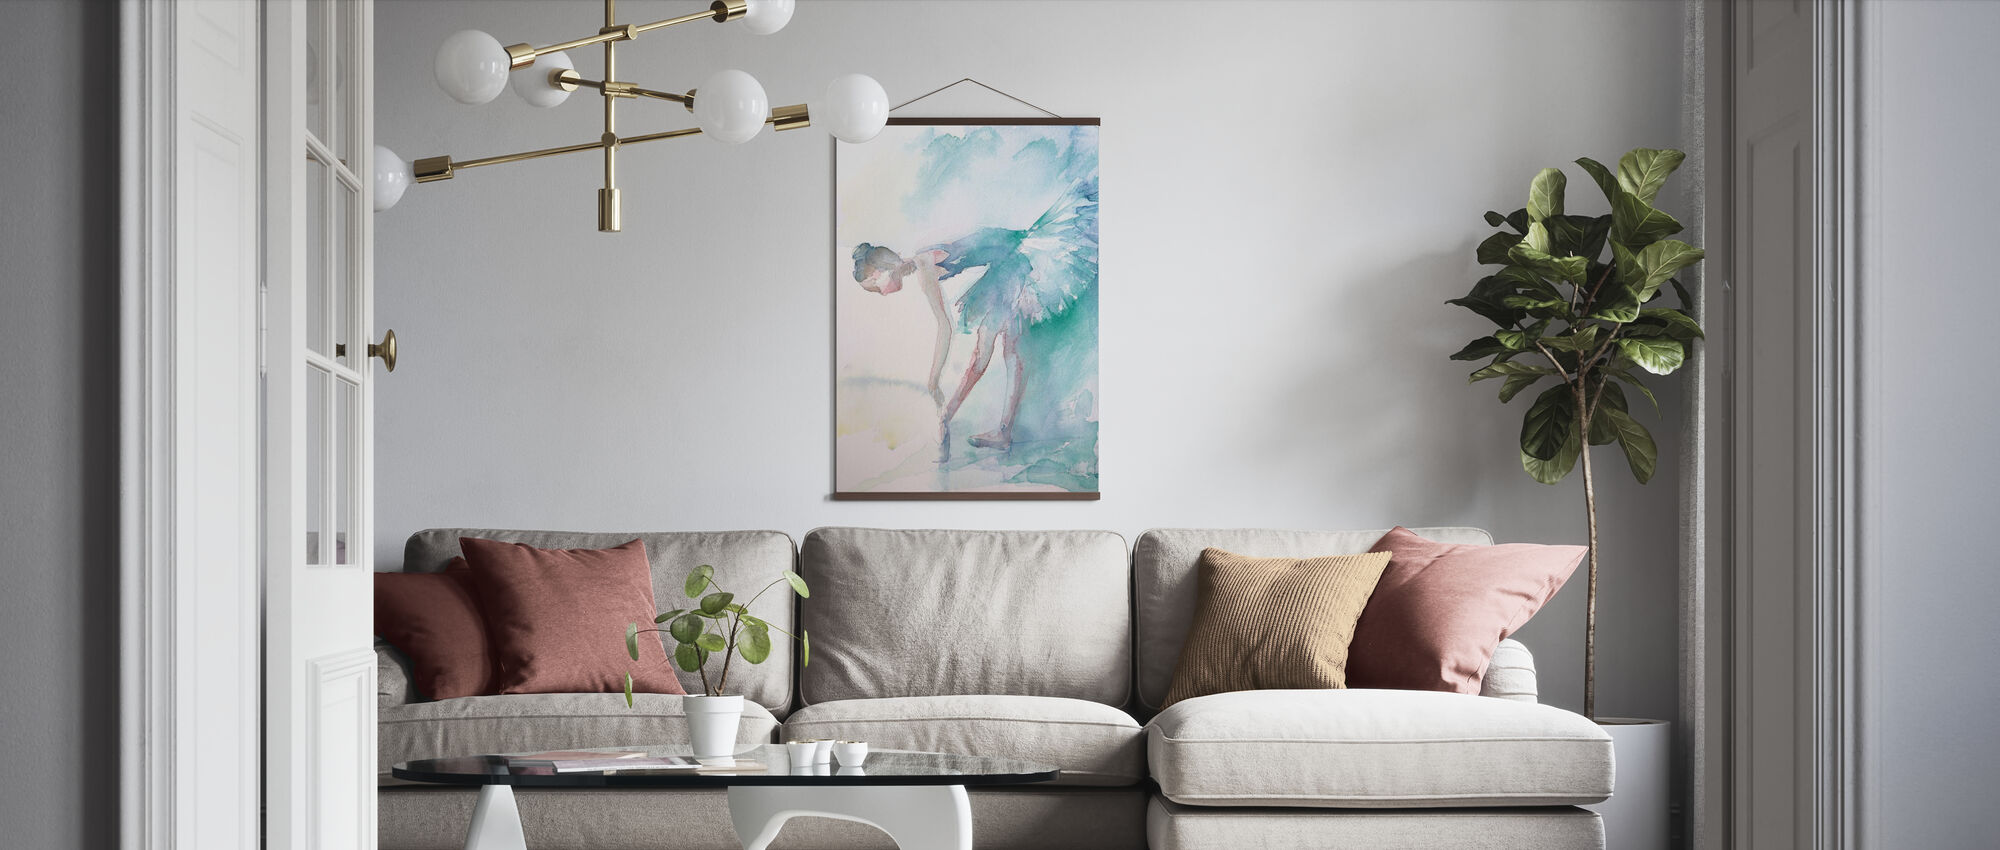 Pointe Shoes - Poster - Living Room